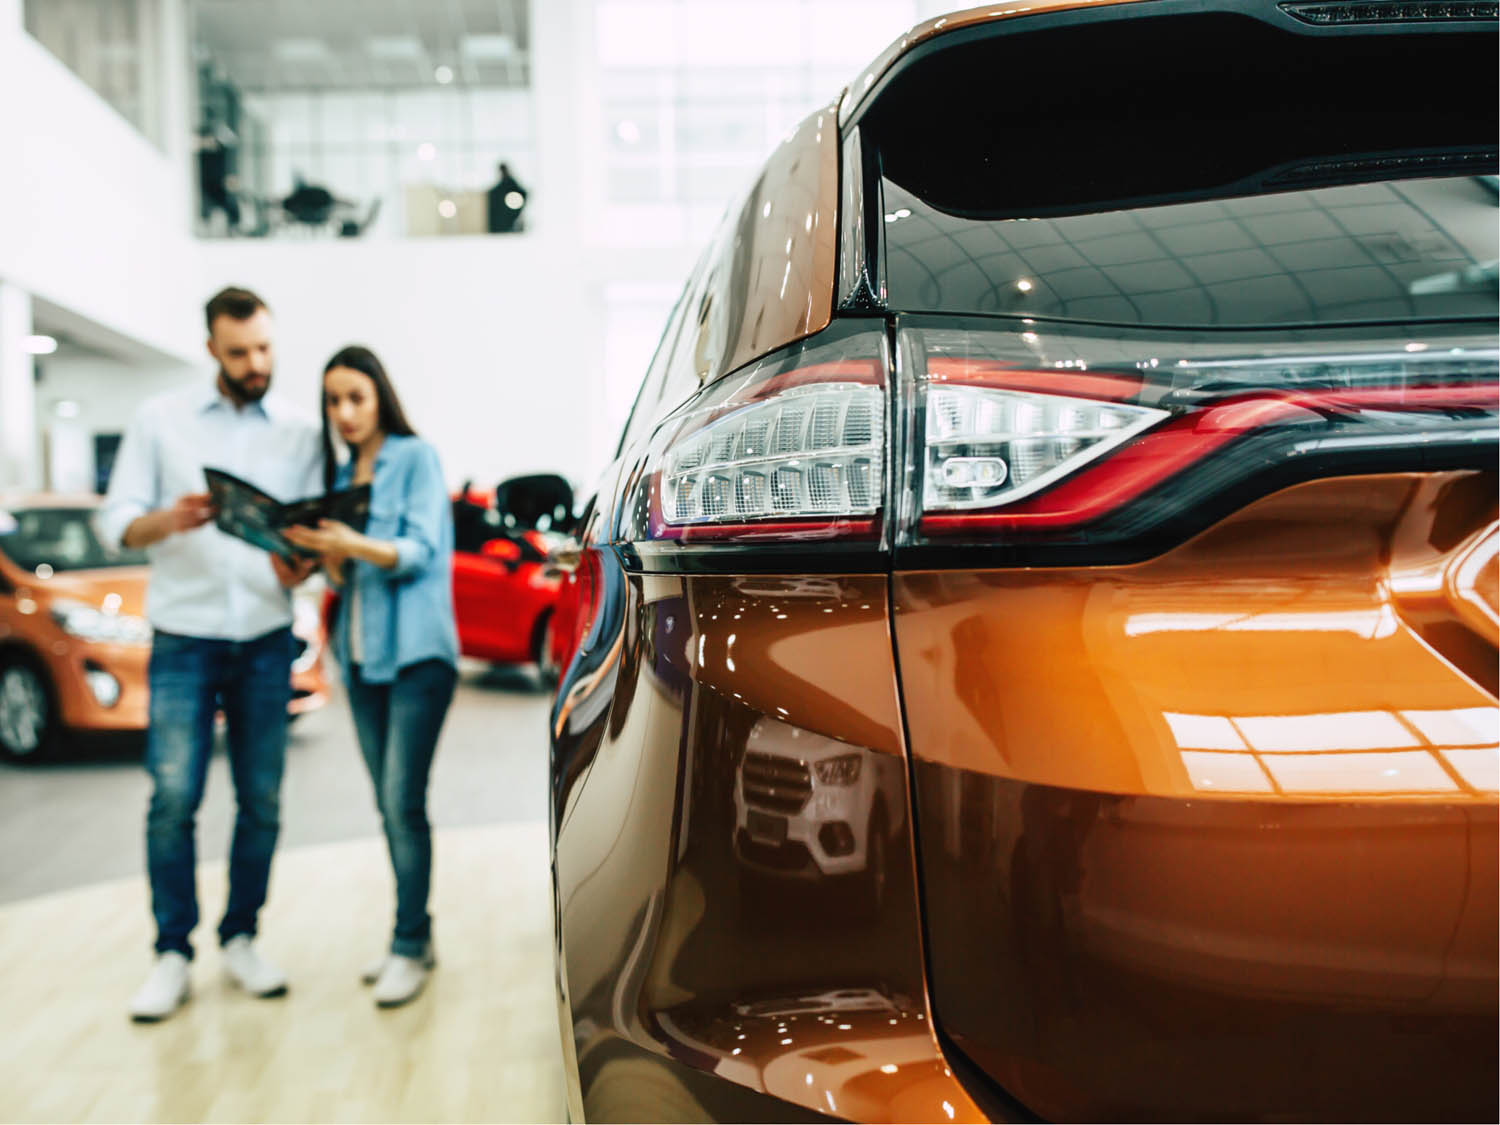 Is it getting hard and hard to keep up with your auto loan? You can make the problem easier for you. A refinanced car loan could be the difference you're looking for - learn more now!